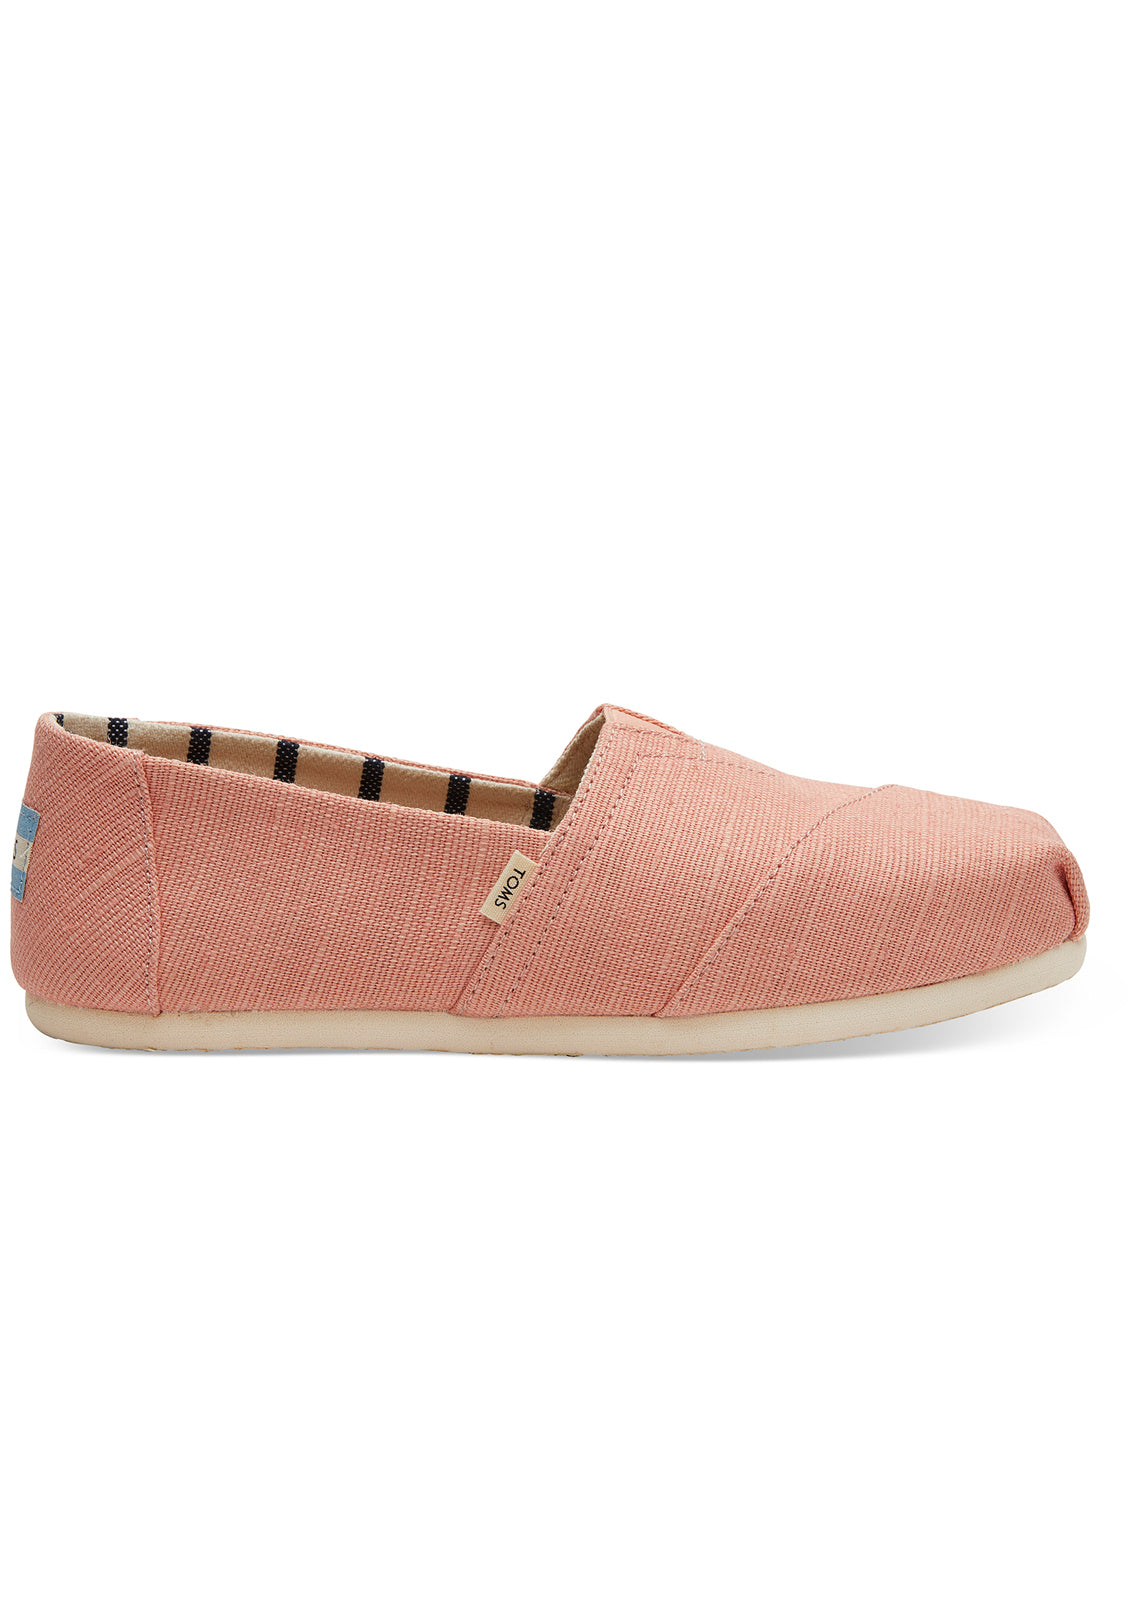 TOMS Women's Coral Heritage Canvas Shoes